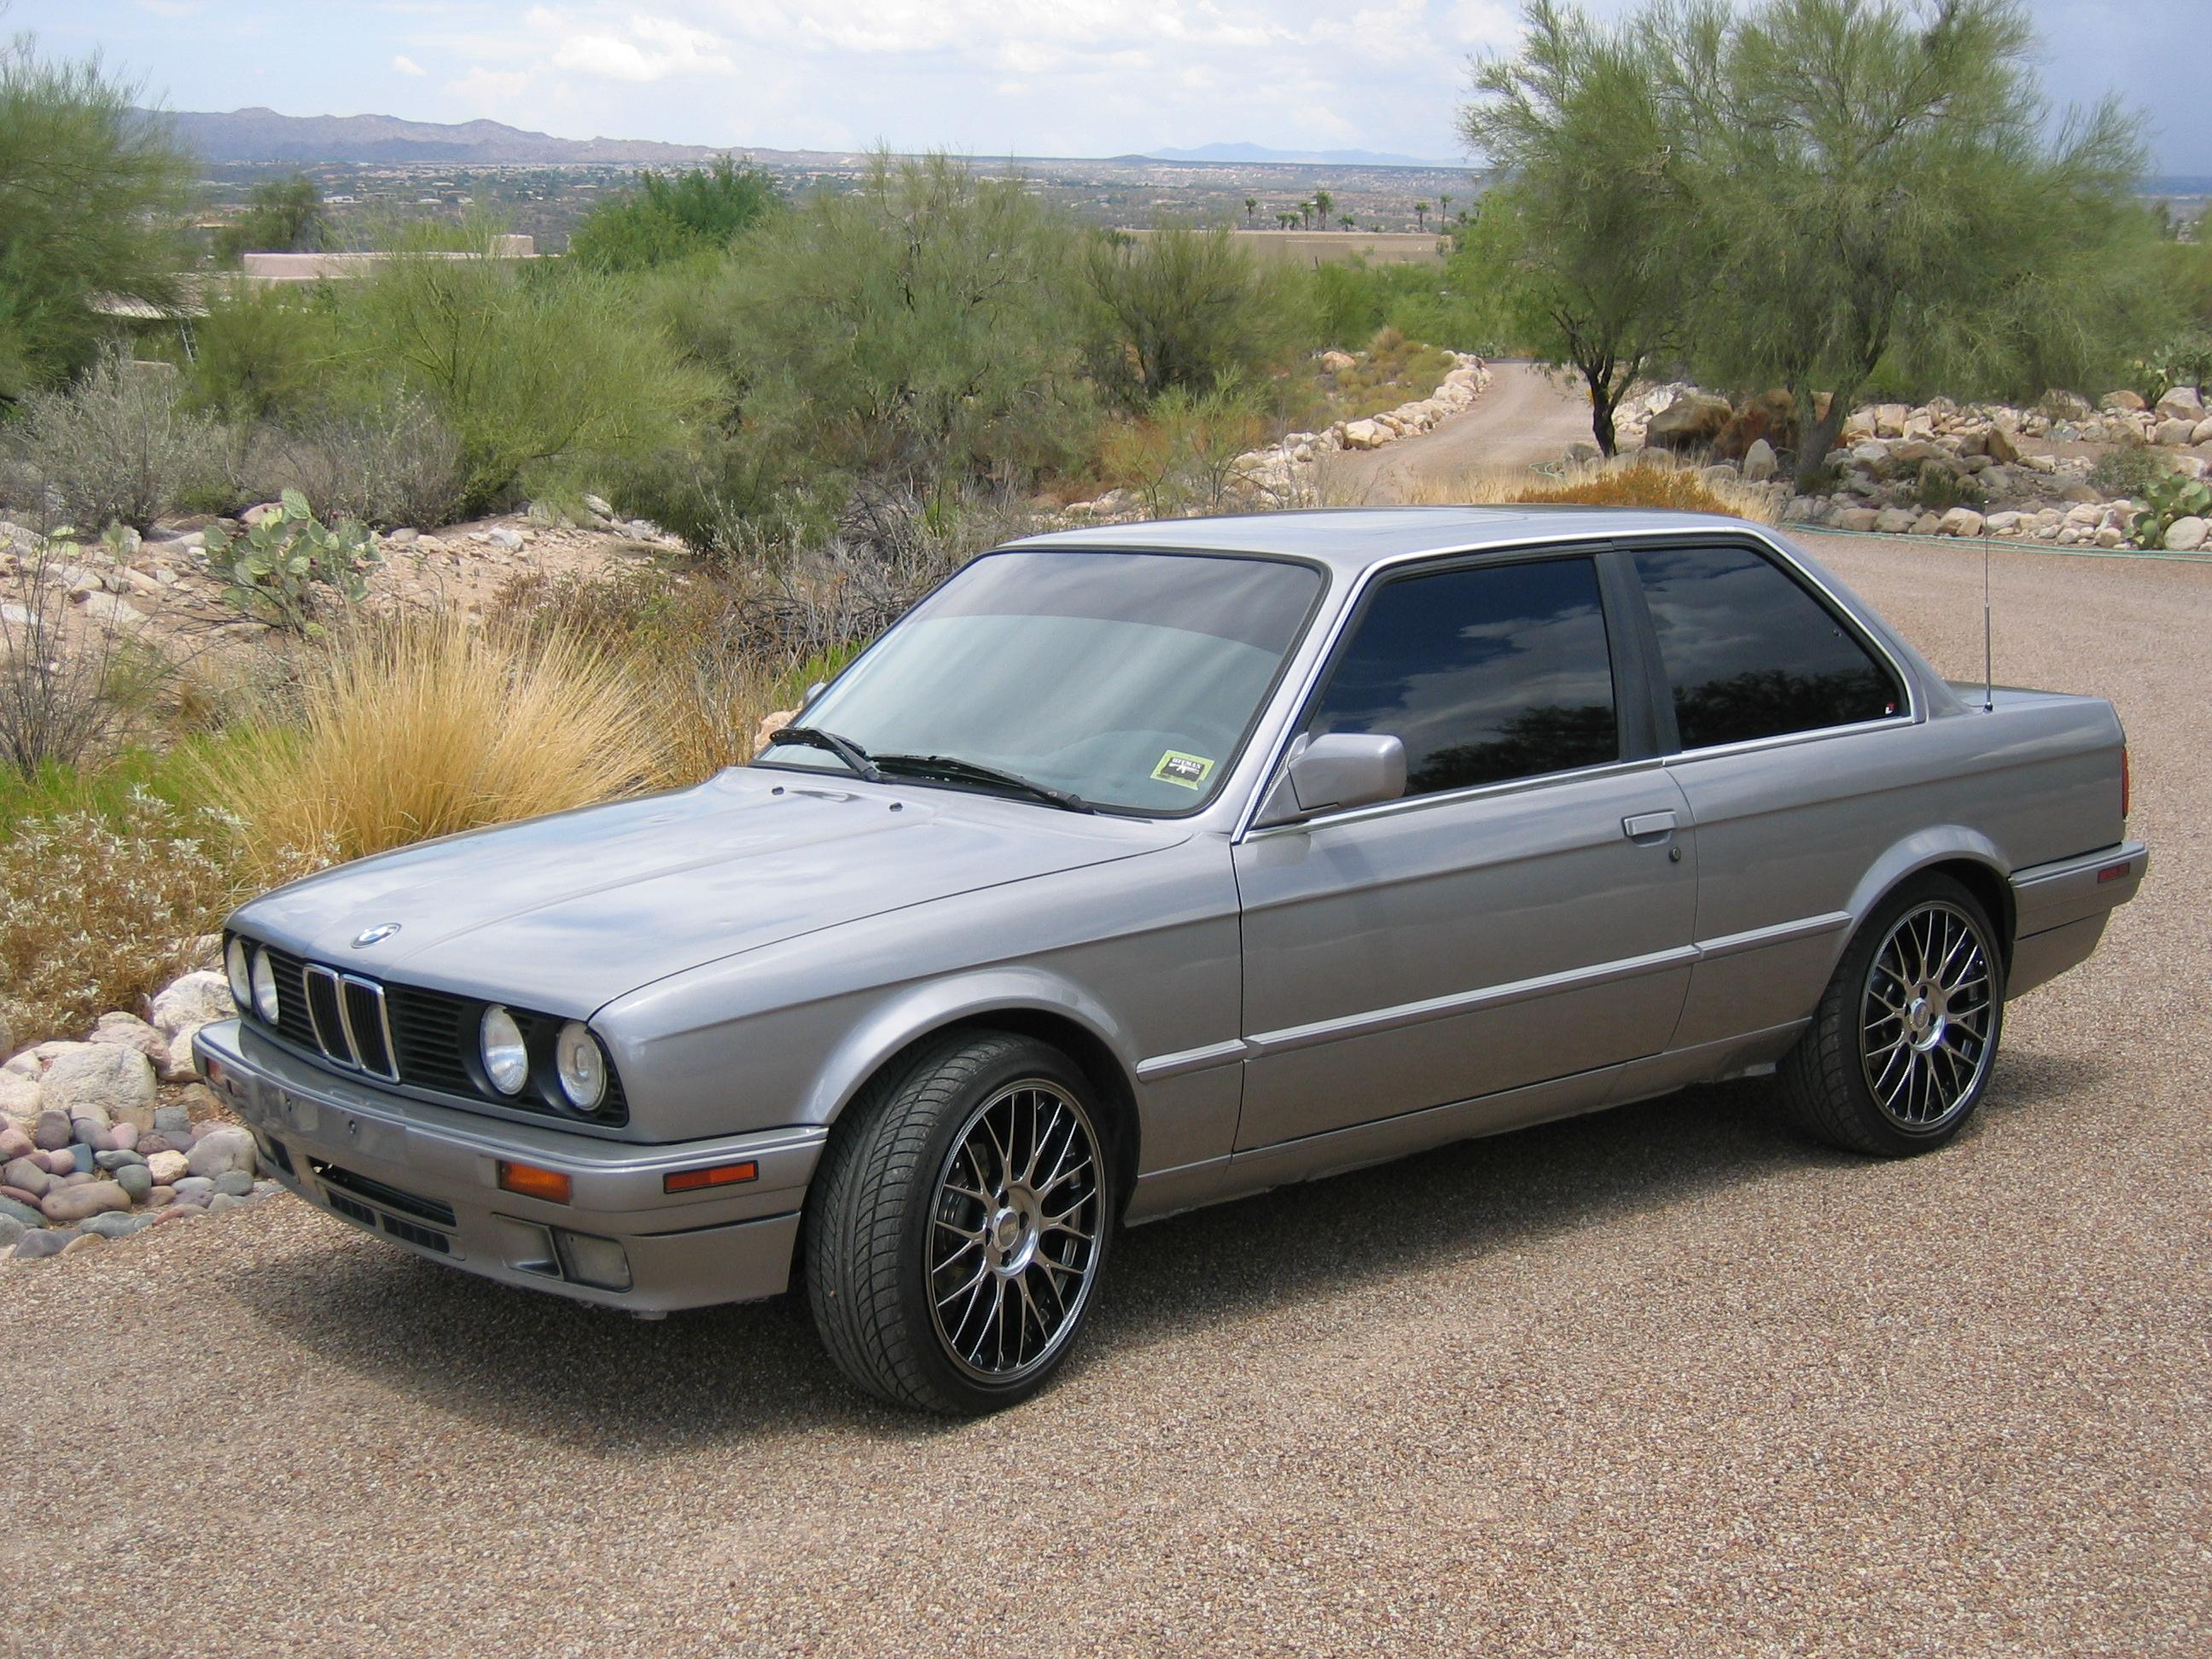 BMW 3 series 320is 1989 photo - 5